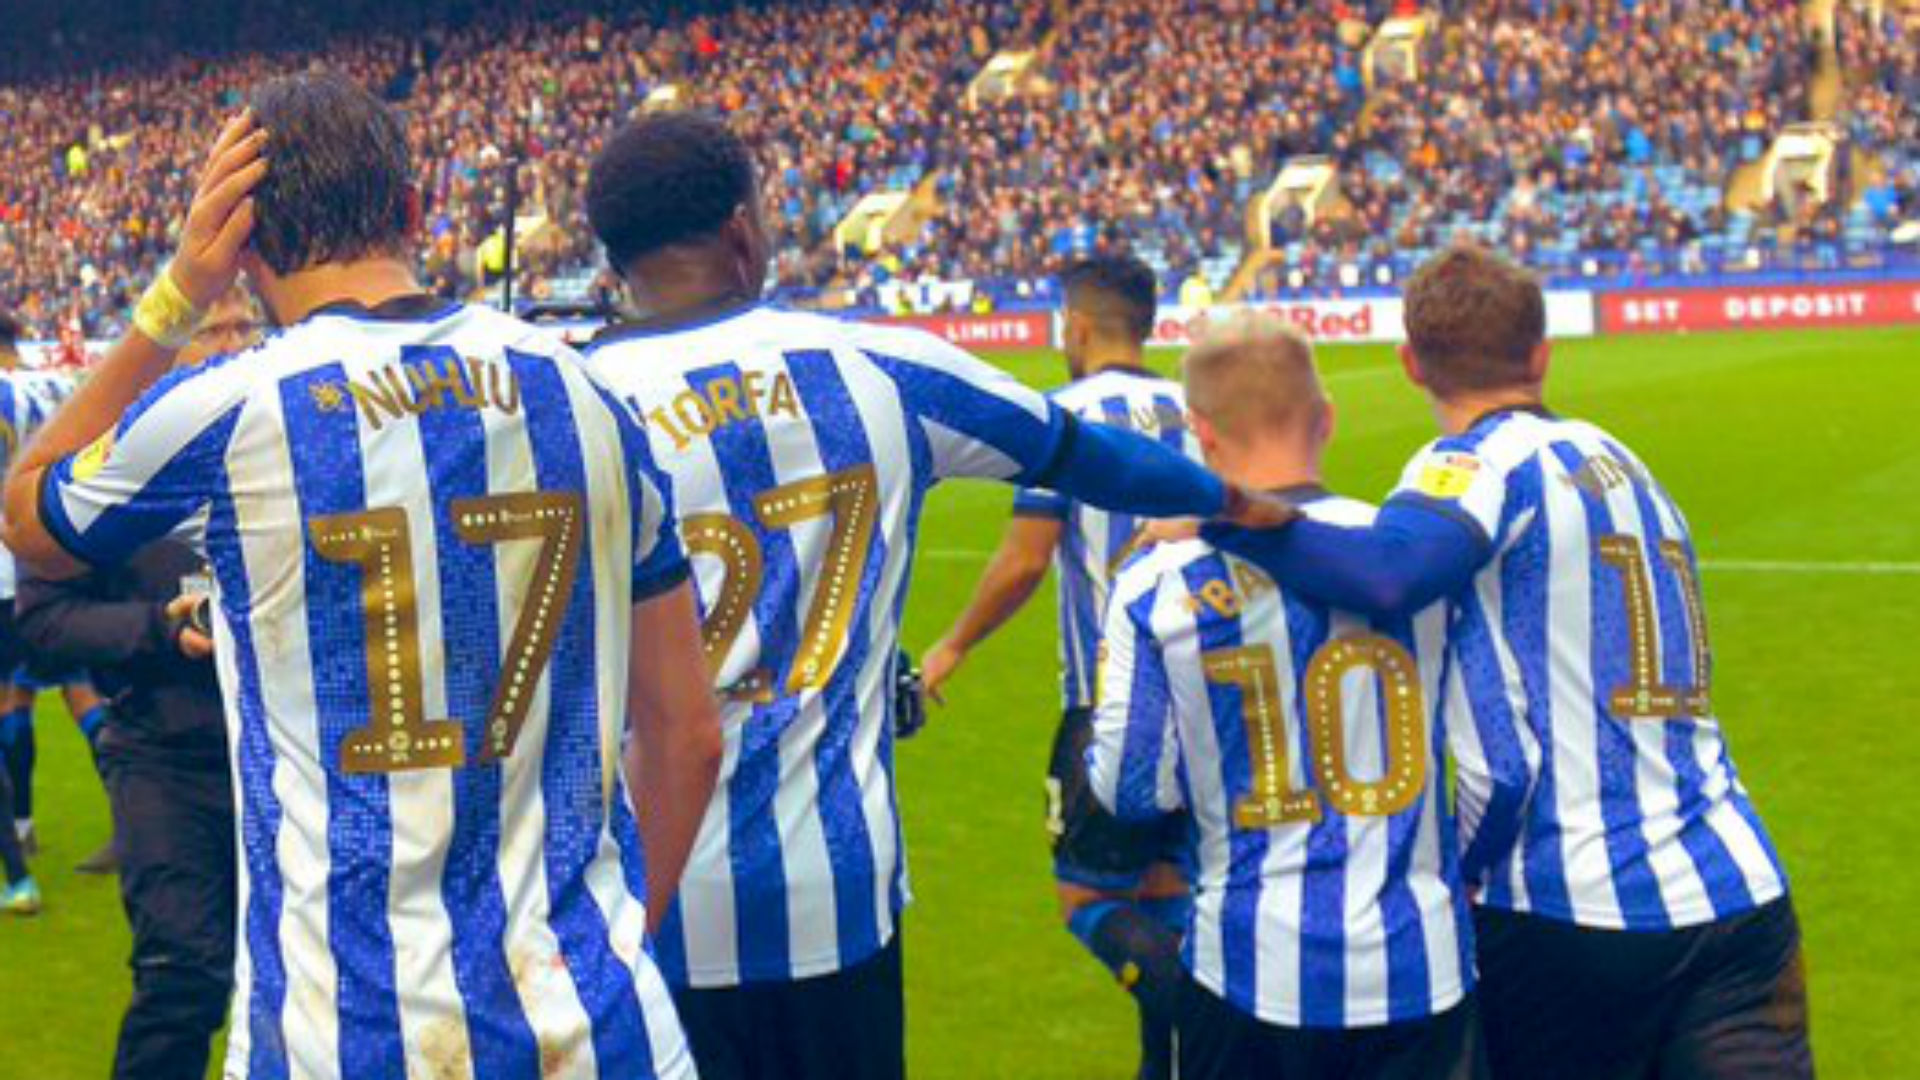 Sheffield Wednesday 1-0 Bristol City: Late Bannan penalty sees Owls soar up to third